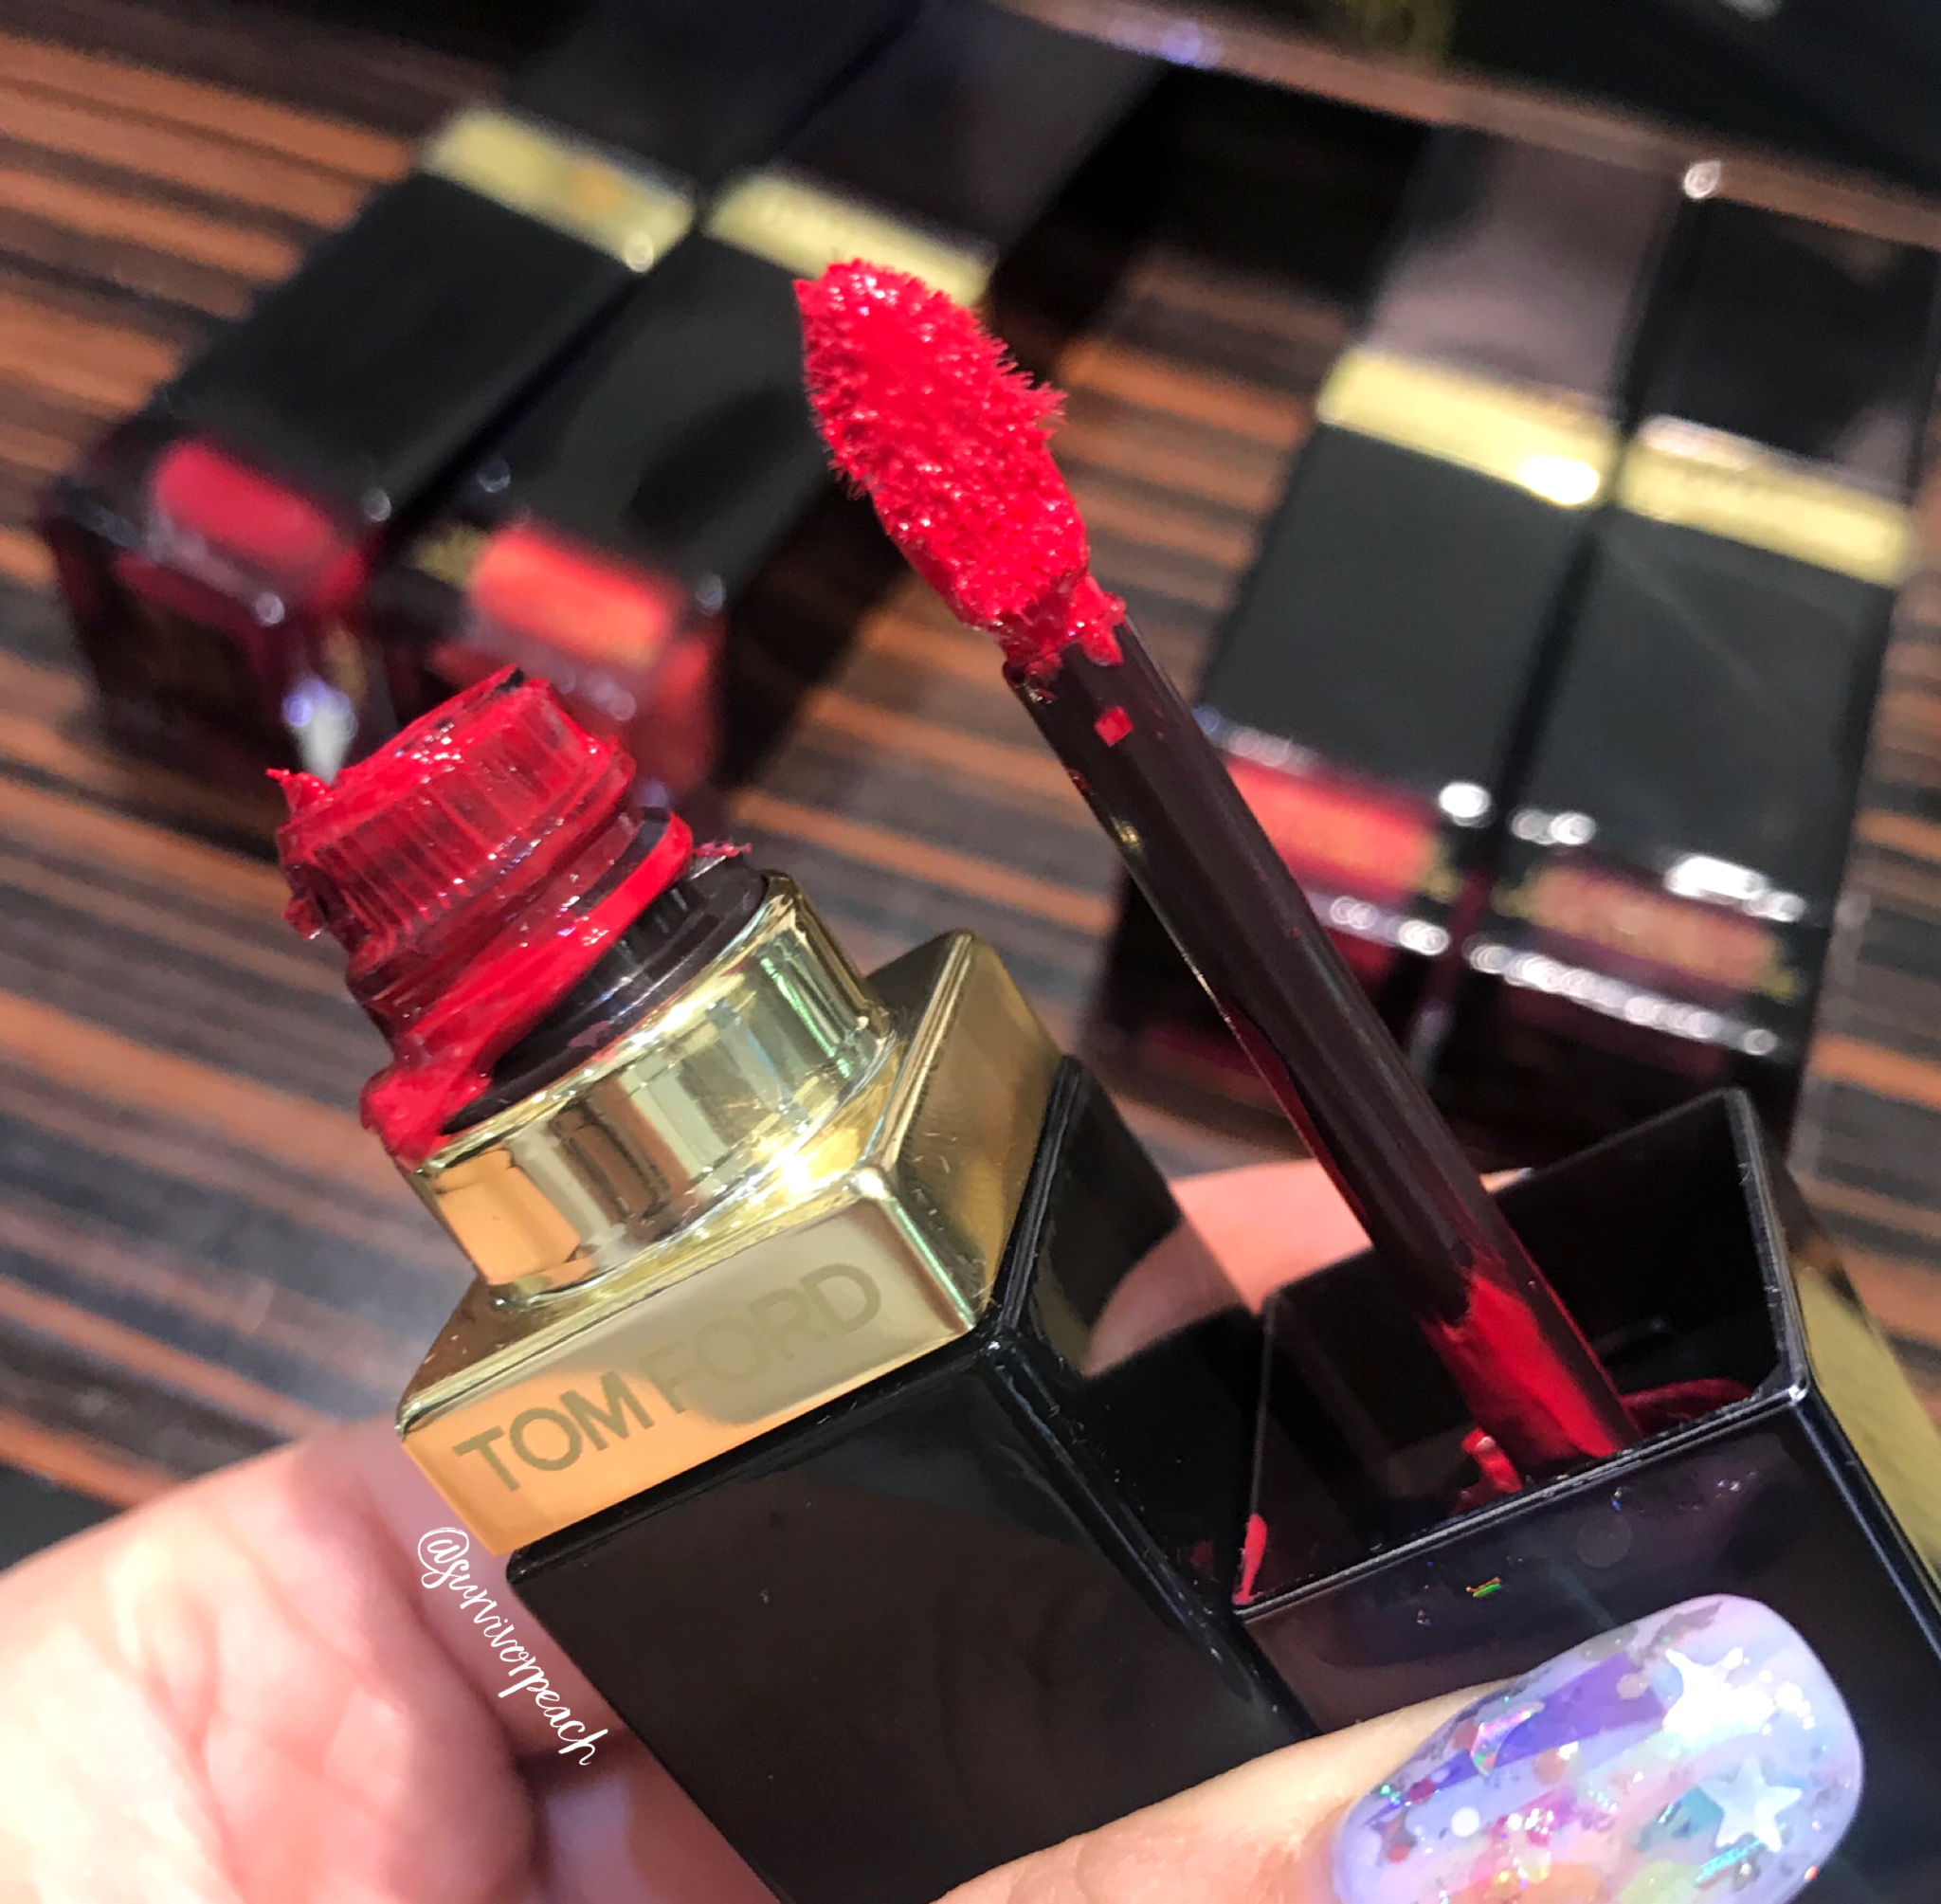 Tomford Lip Lacquer Luxe Matte in shade 08 Over Power